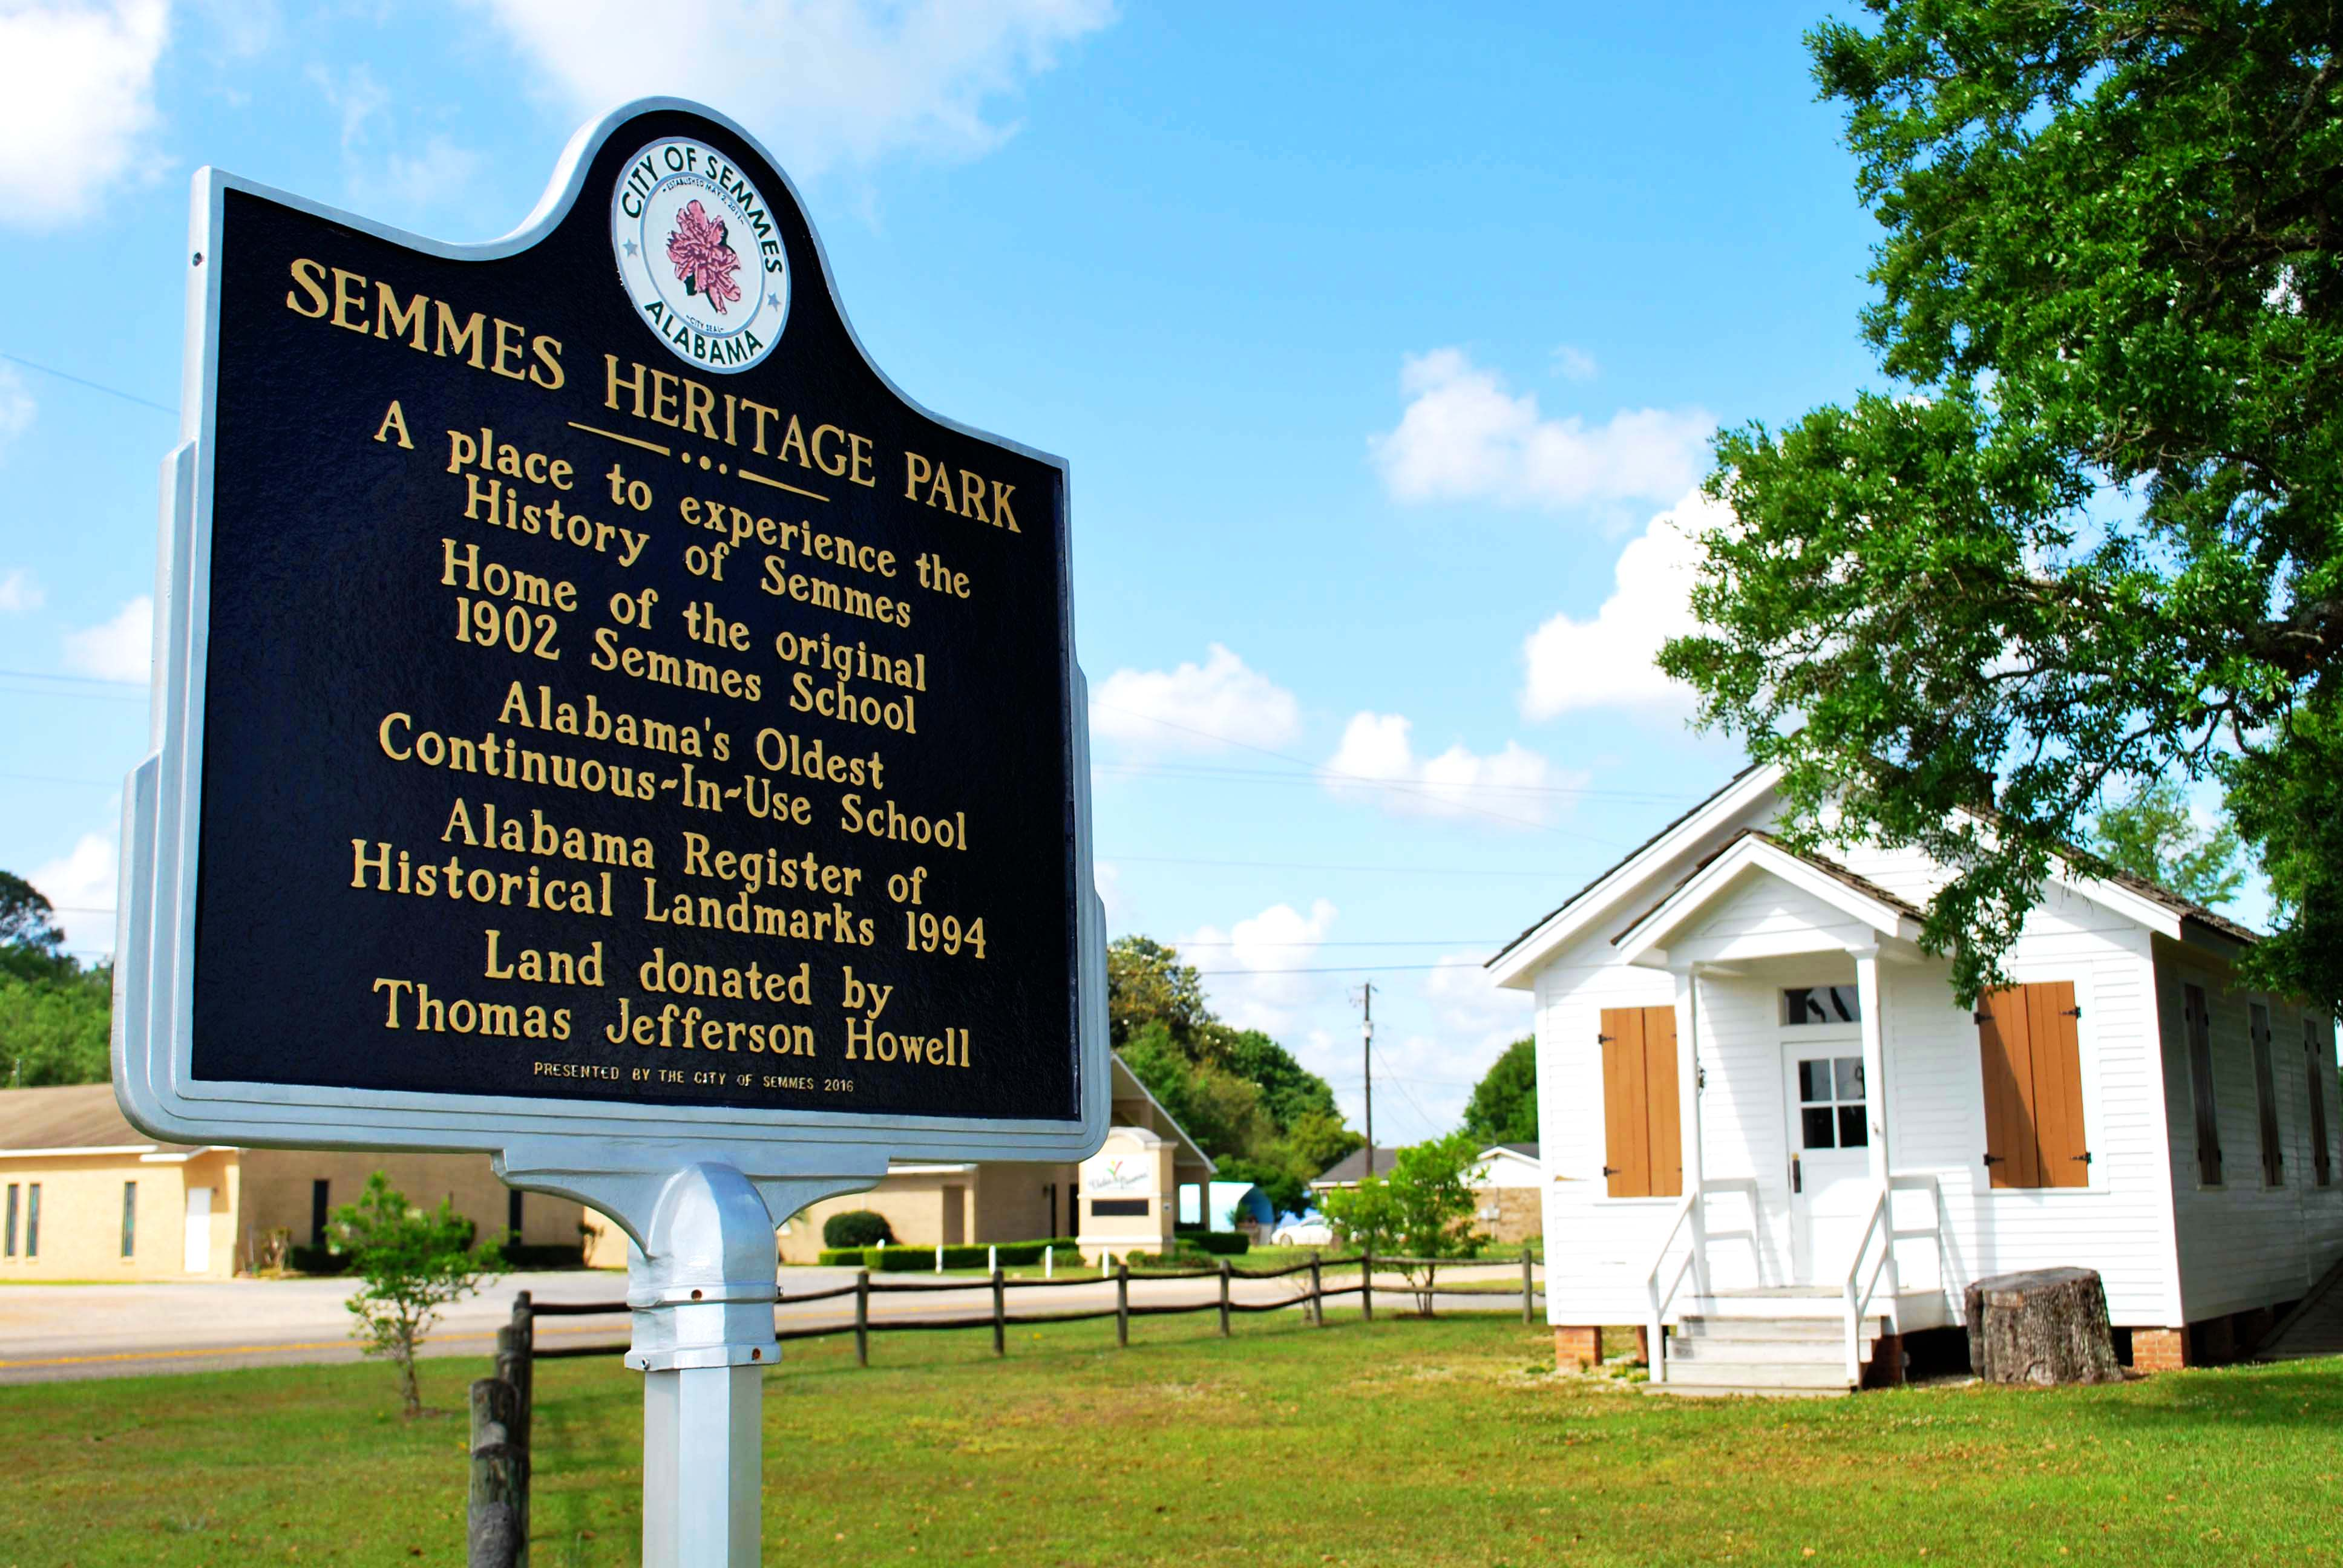 Heritage park city of semmes alabama - The garden place at heritage park ...